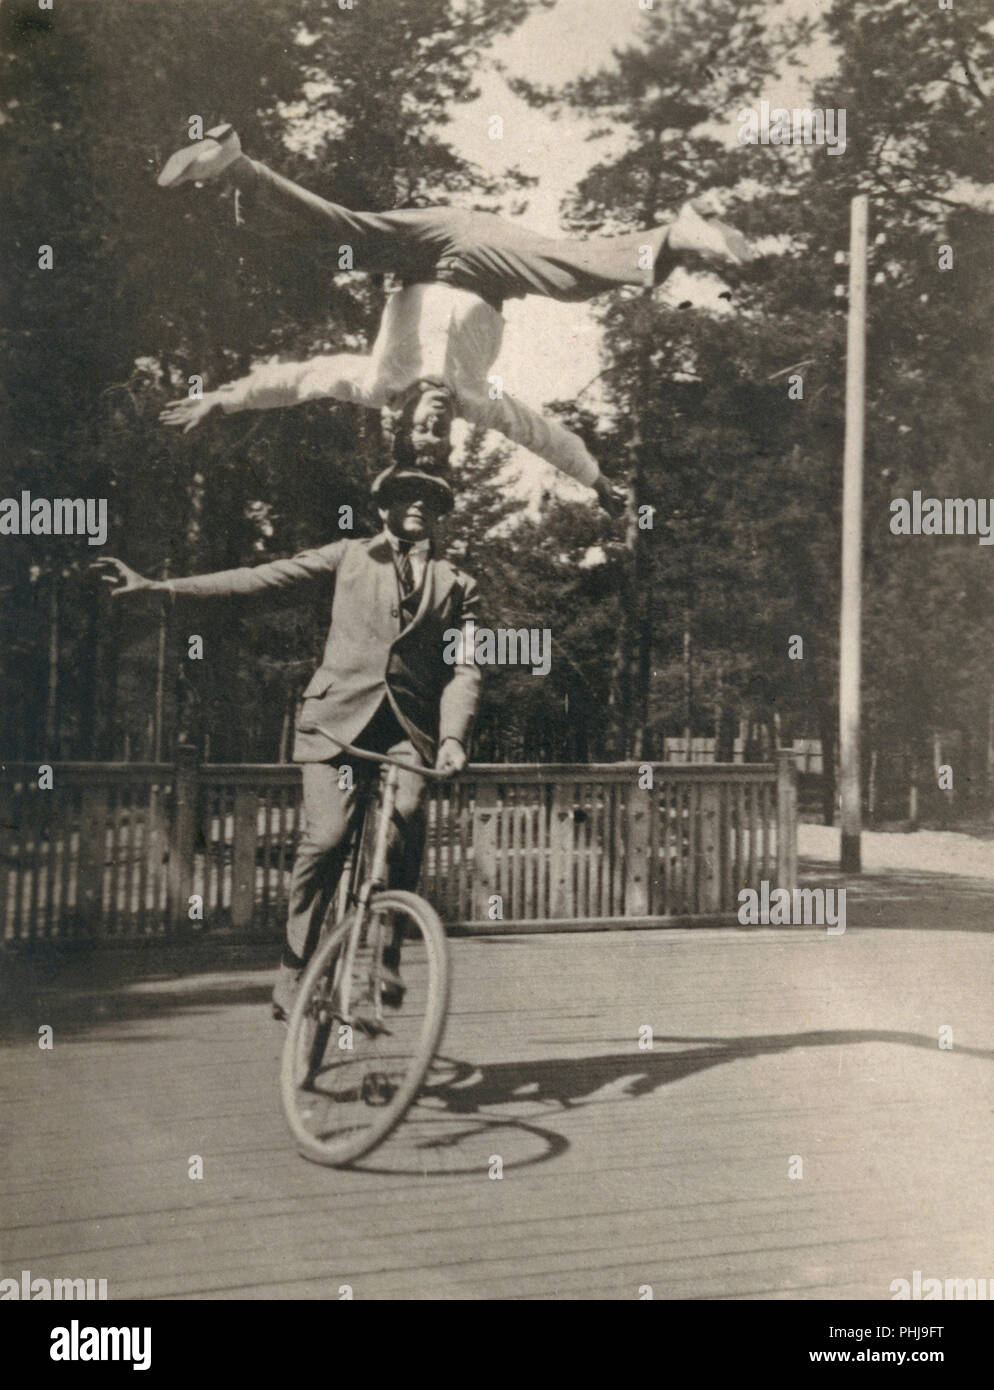 1920s men on a bicycle. The Swedish bicycle acrobat Fritiof Malmsten is performing his balance act with his young brother Helge. An impressive performance where he is standing on his head and not using his hands to hold his balance. Fritiof Malmsten became a internationally known bicycle acrobat. - Stock Image